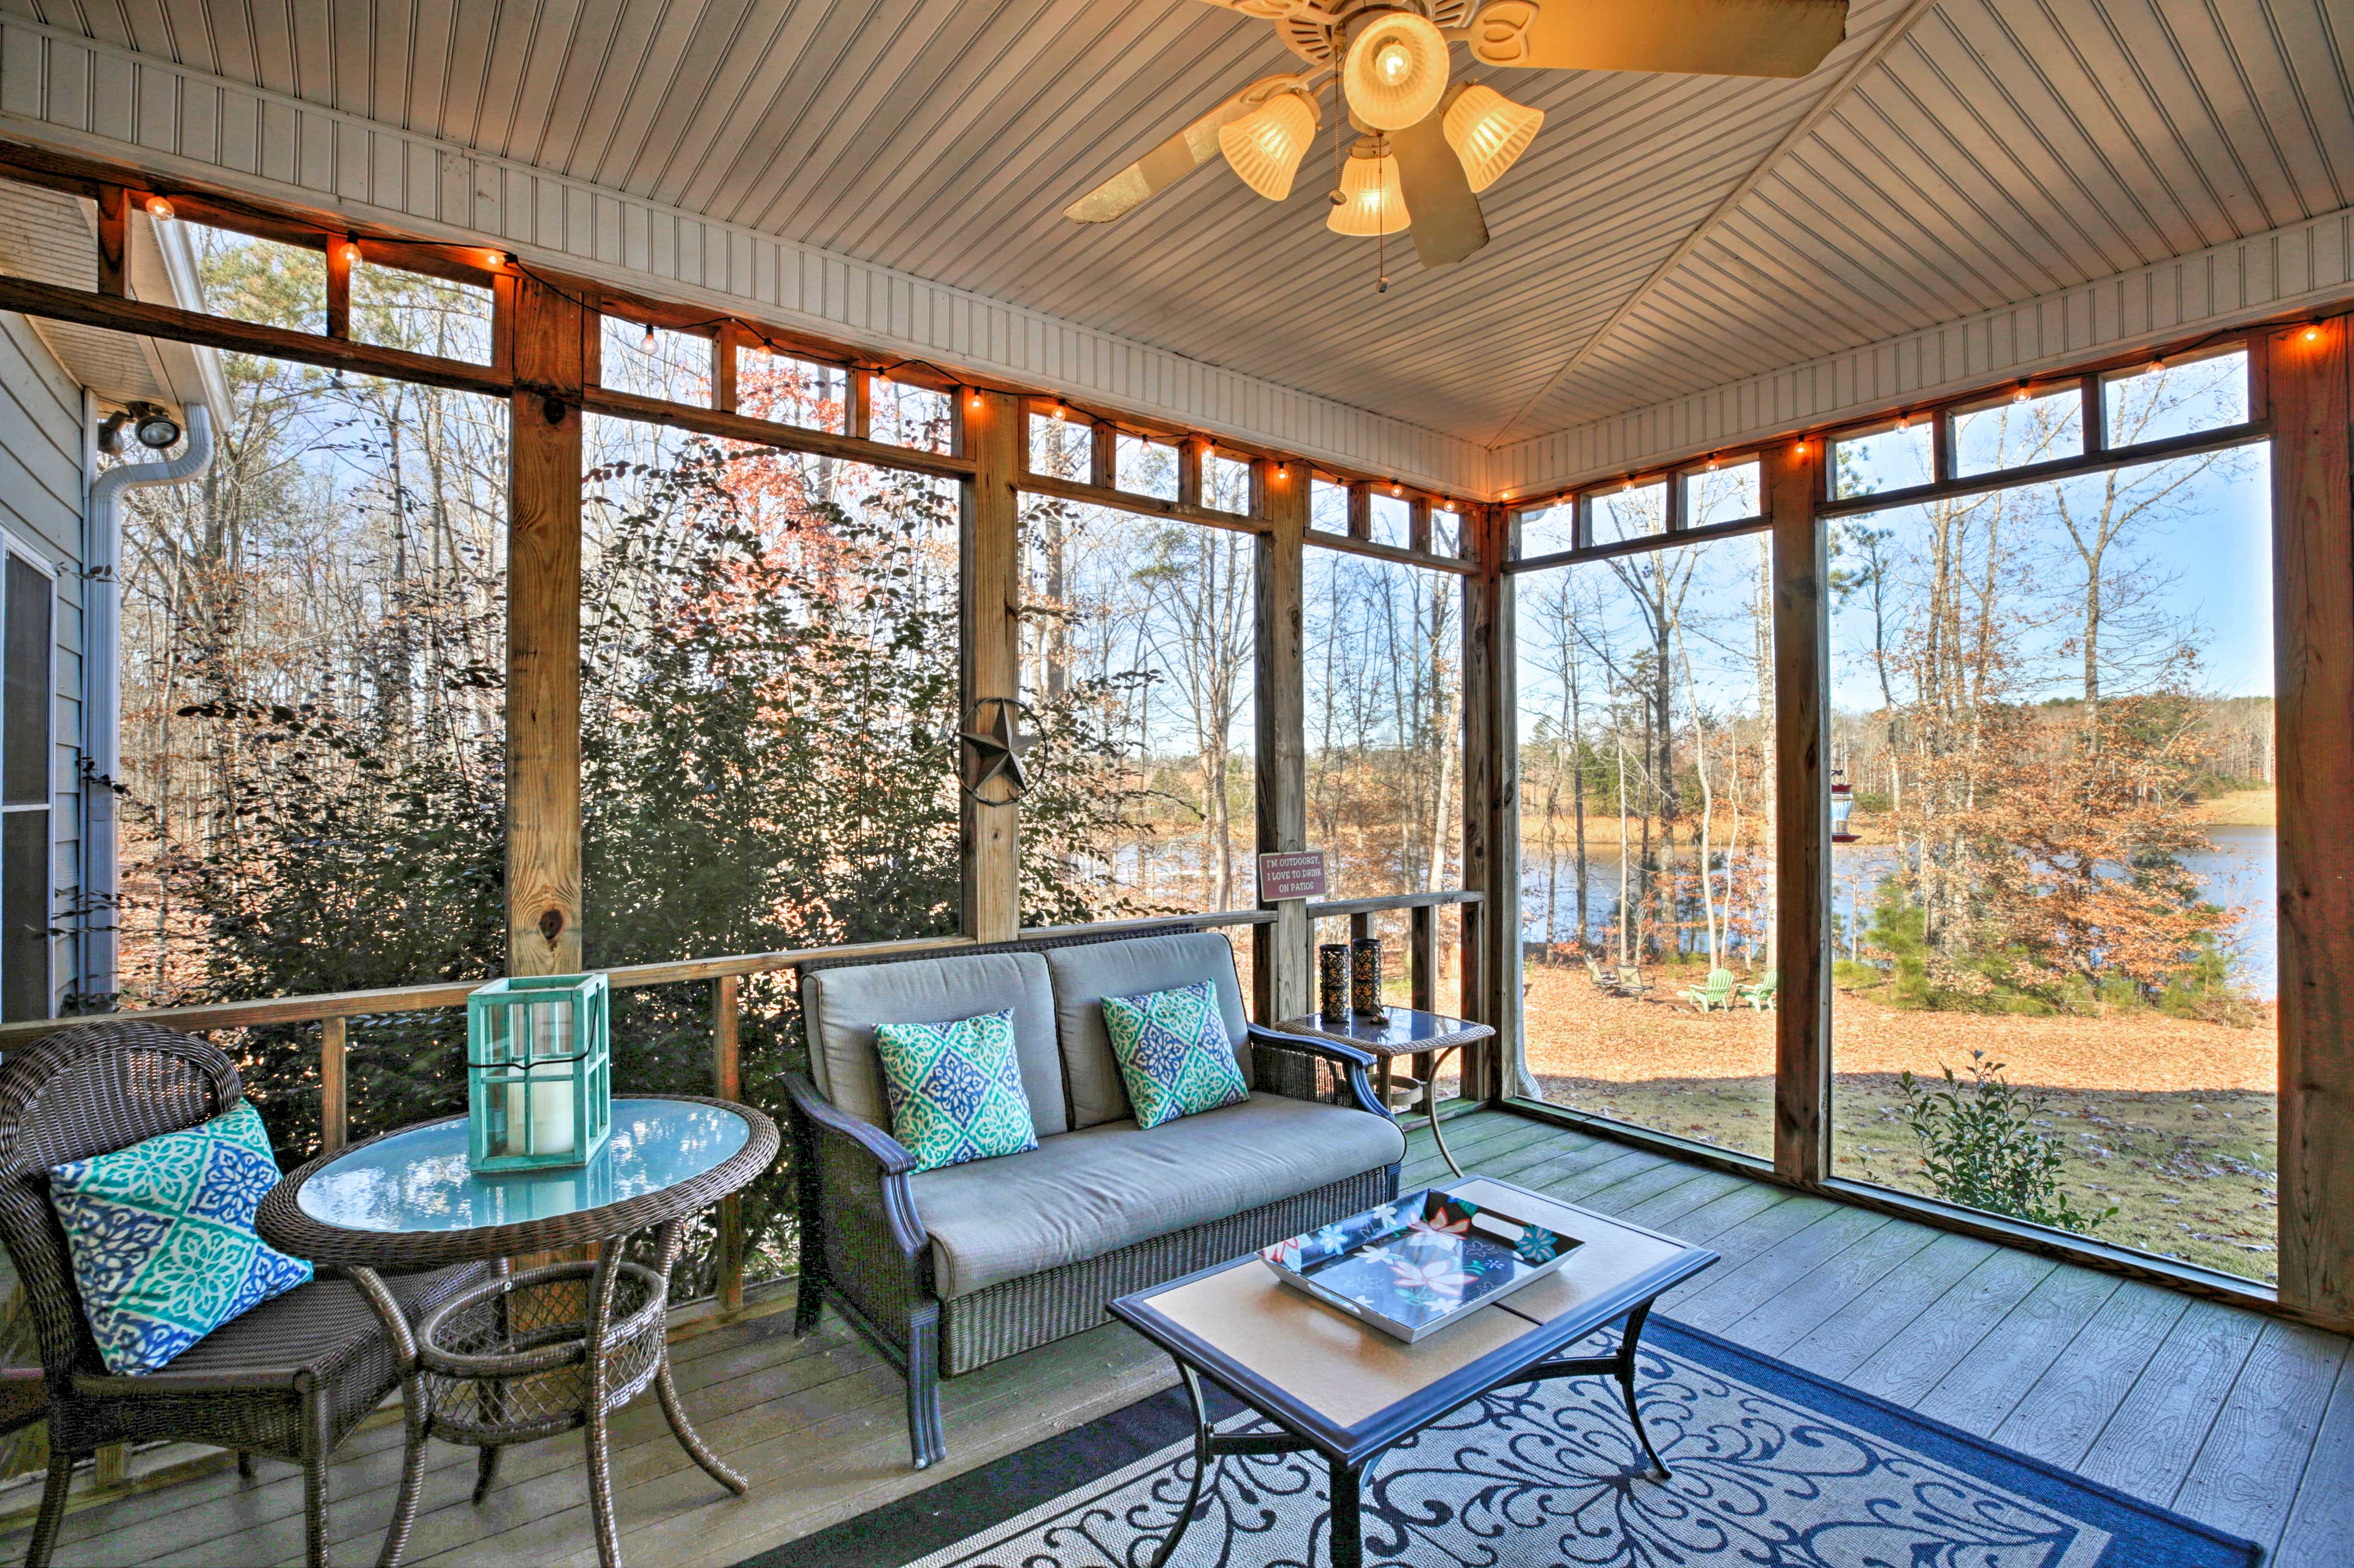 Sink into the comfortable furnishings on the screened-in porch.